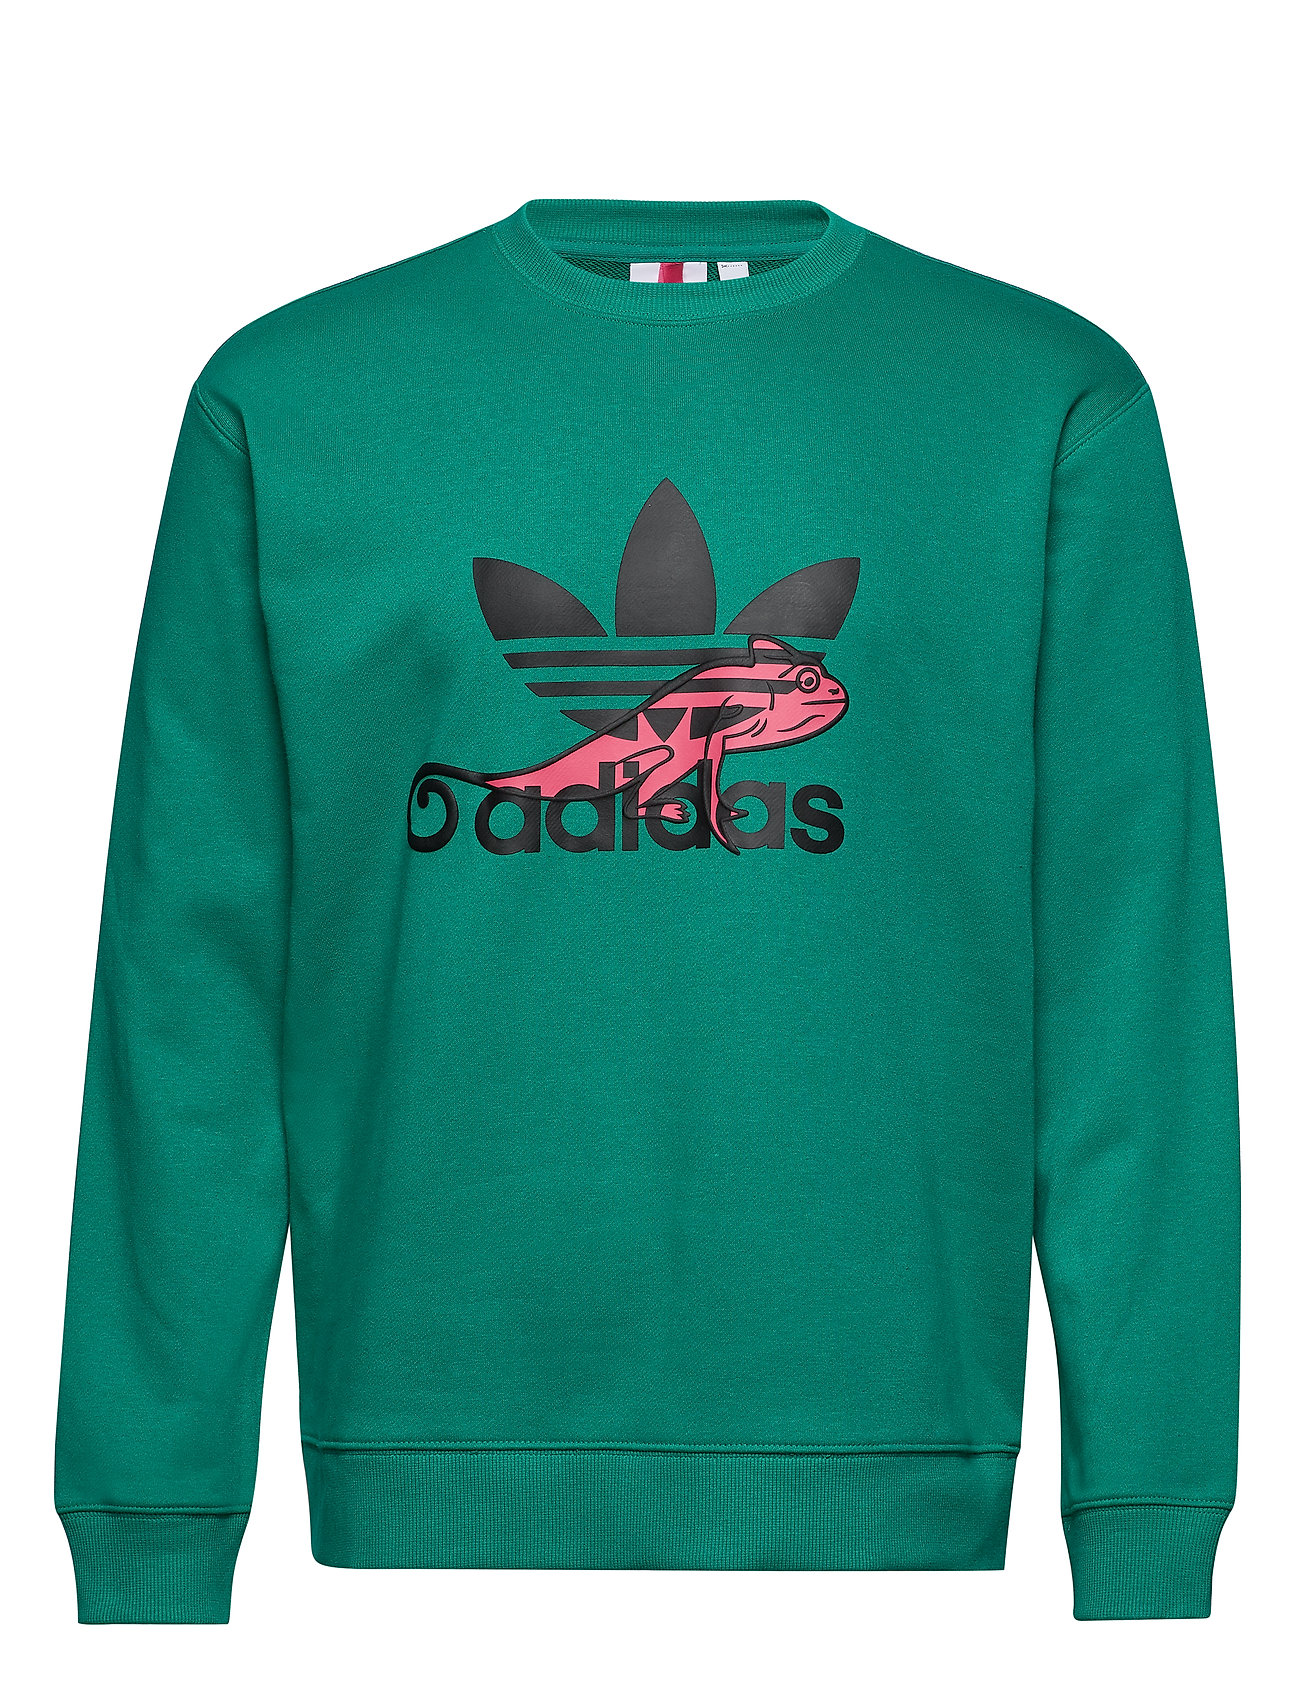 adidas Originals SWEATSHIRT - GLRGRN